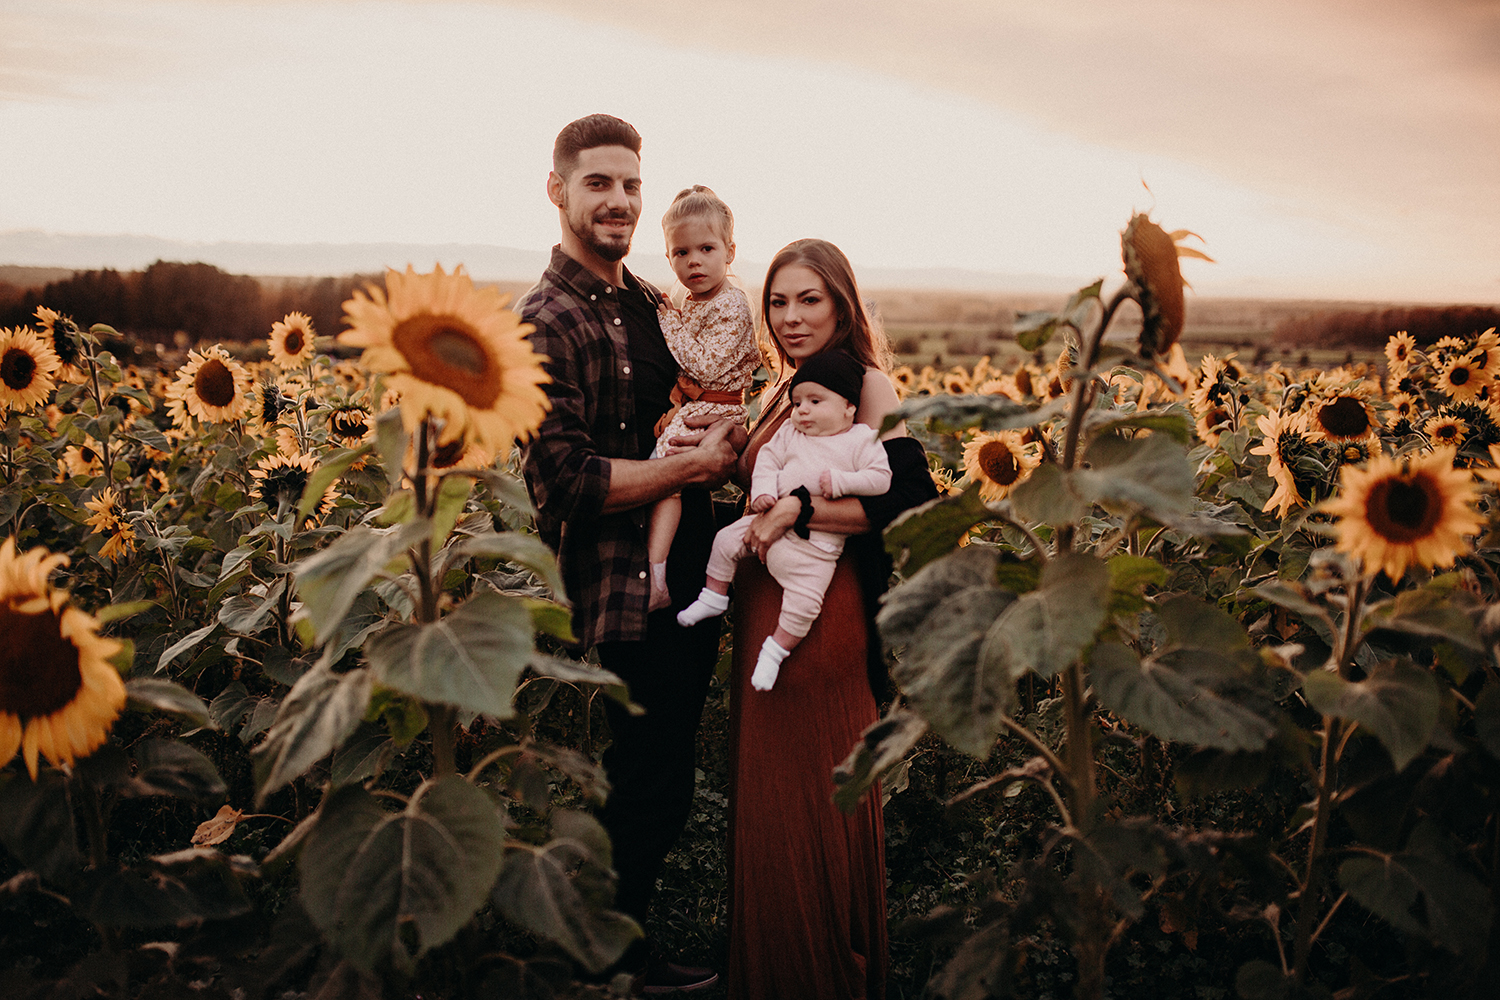 elle r photography's family